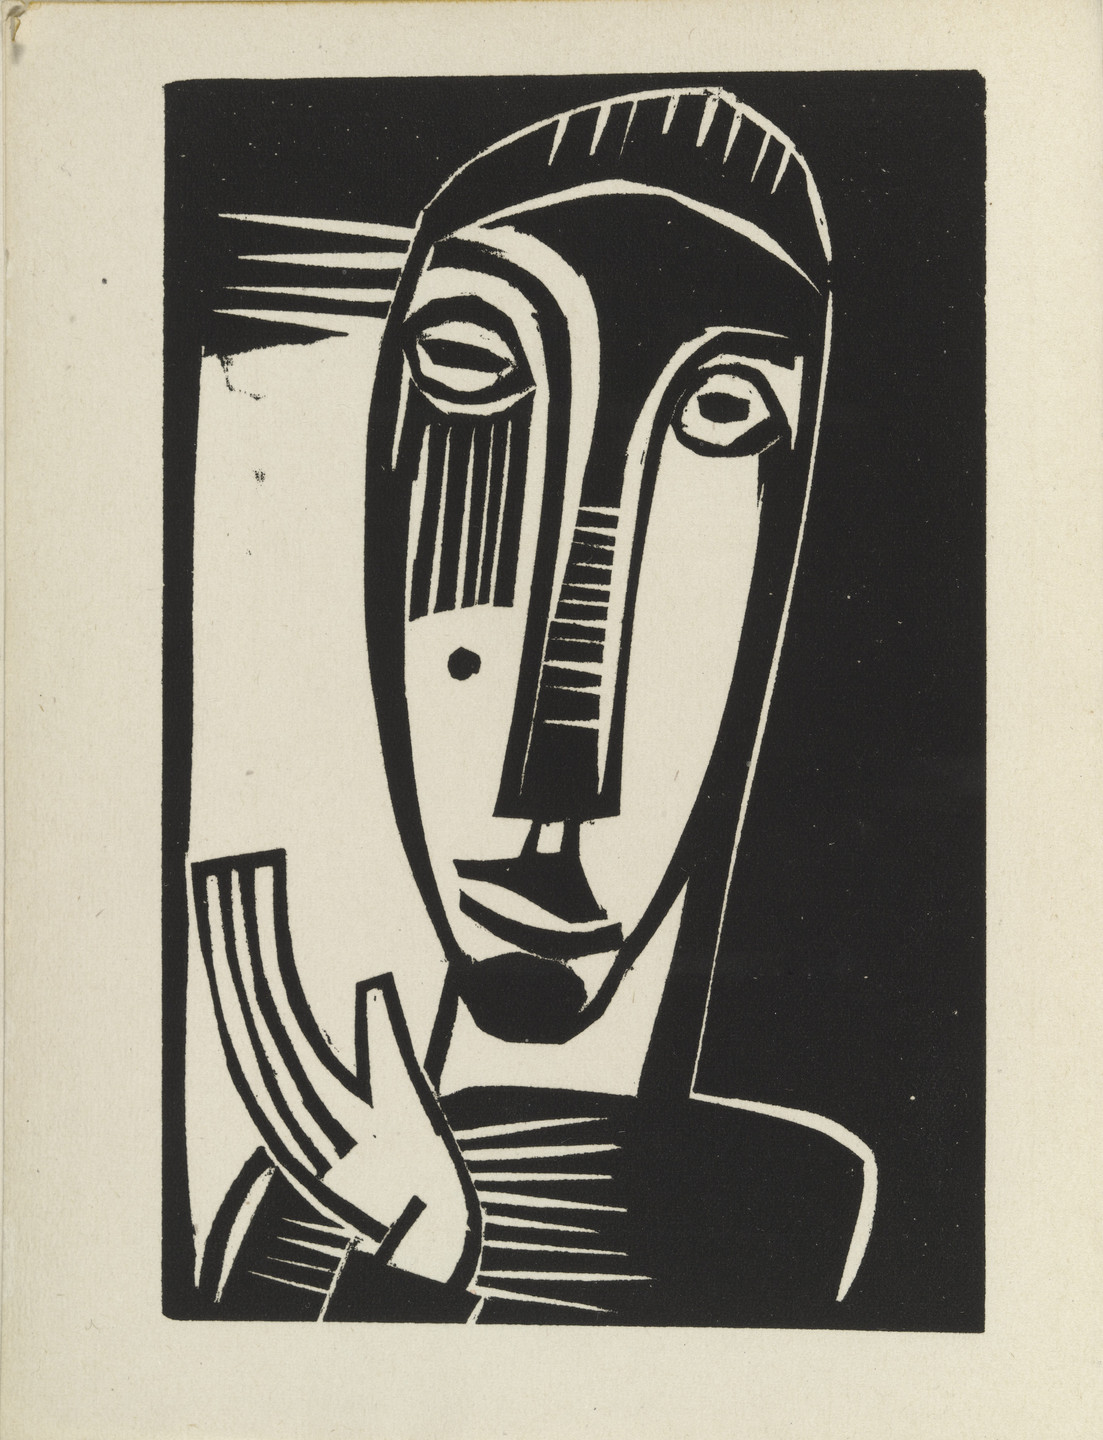 Karl Schmidt-Rottluff. Little Prophetess (Kleine Prophetin) from Das graphische Jahrbuch (The Print Yearbook). (1920, print executed 1919)